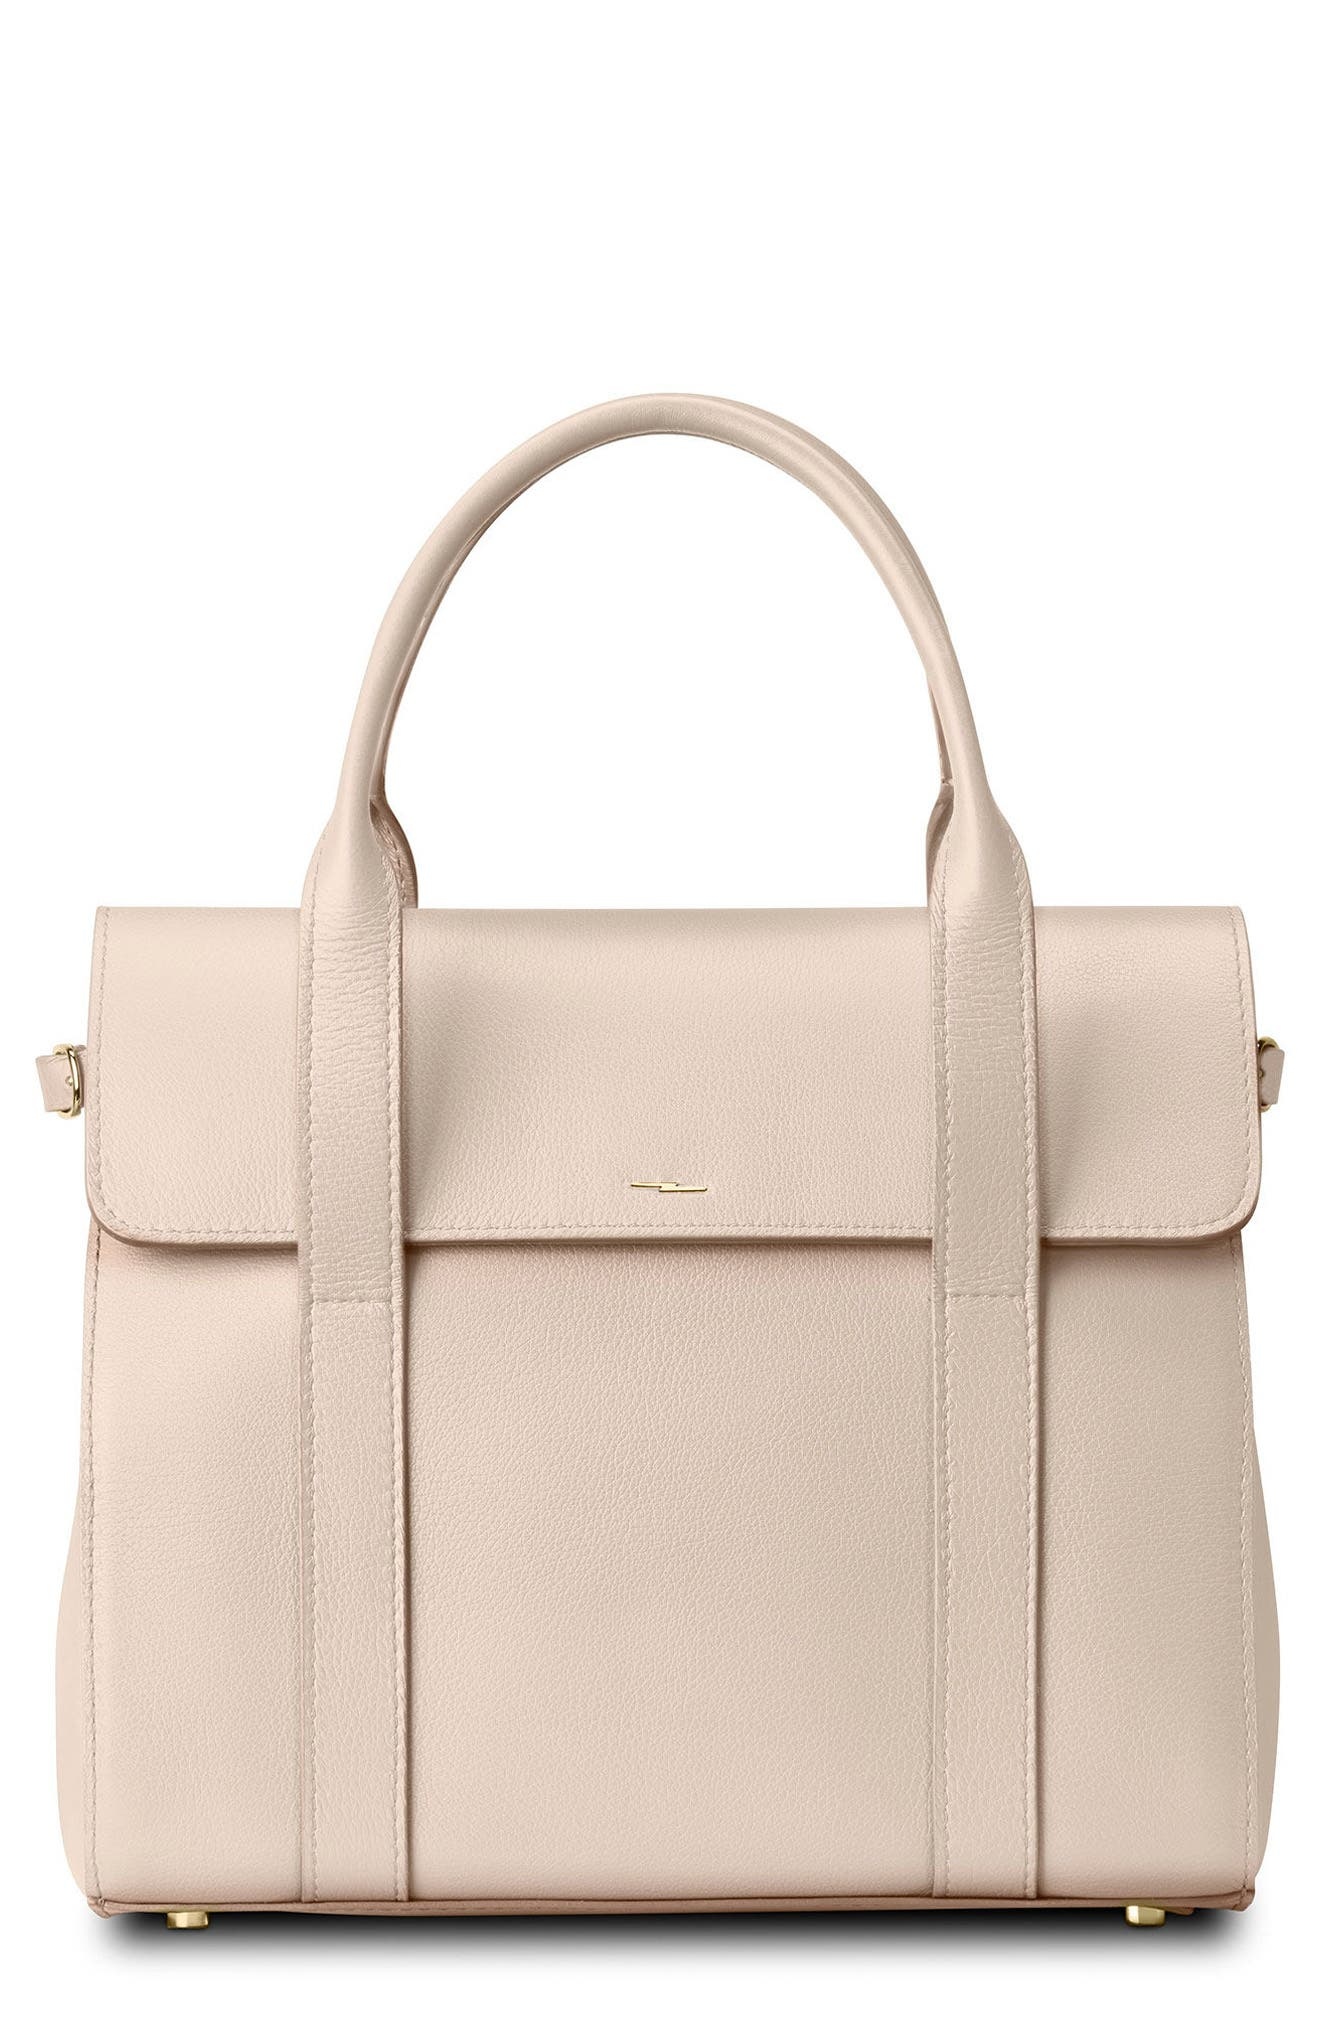 Small Grained Leather Satchel,                             Main thumbnail 1, color,                             SOFT BLUSH